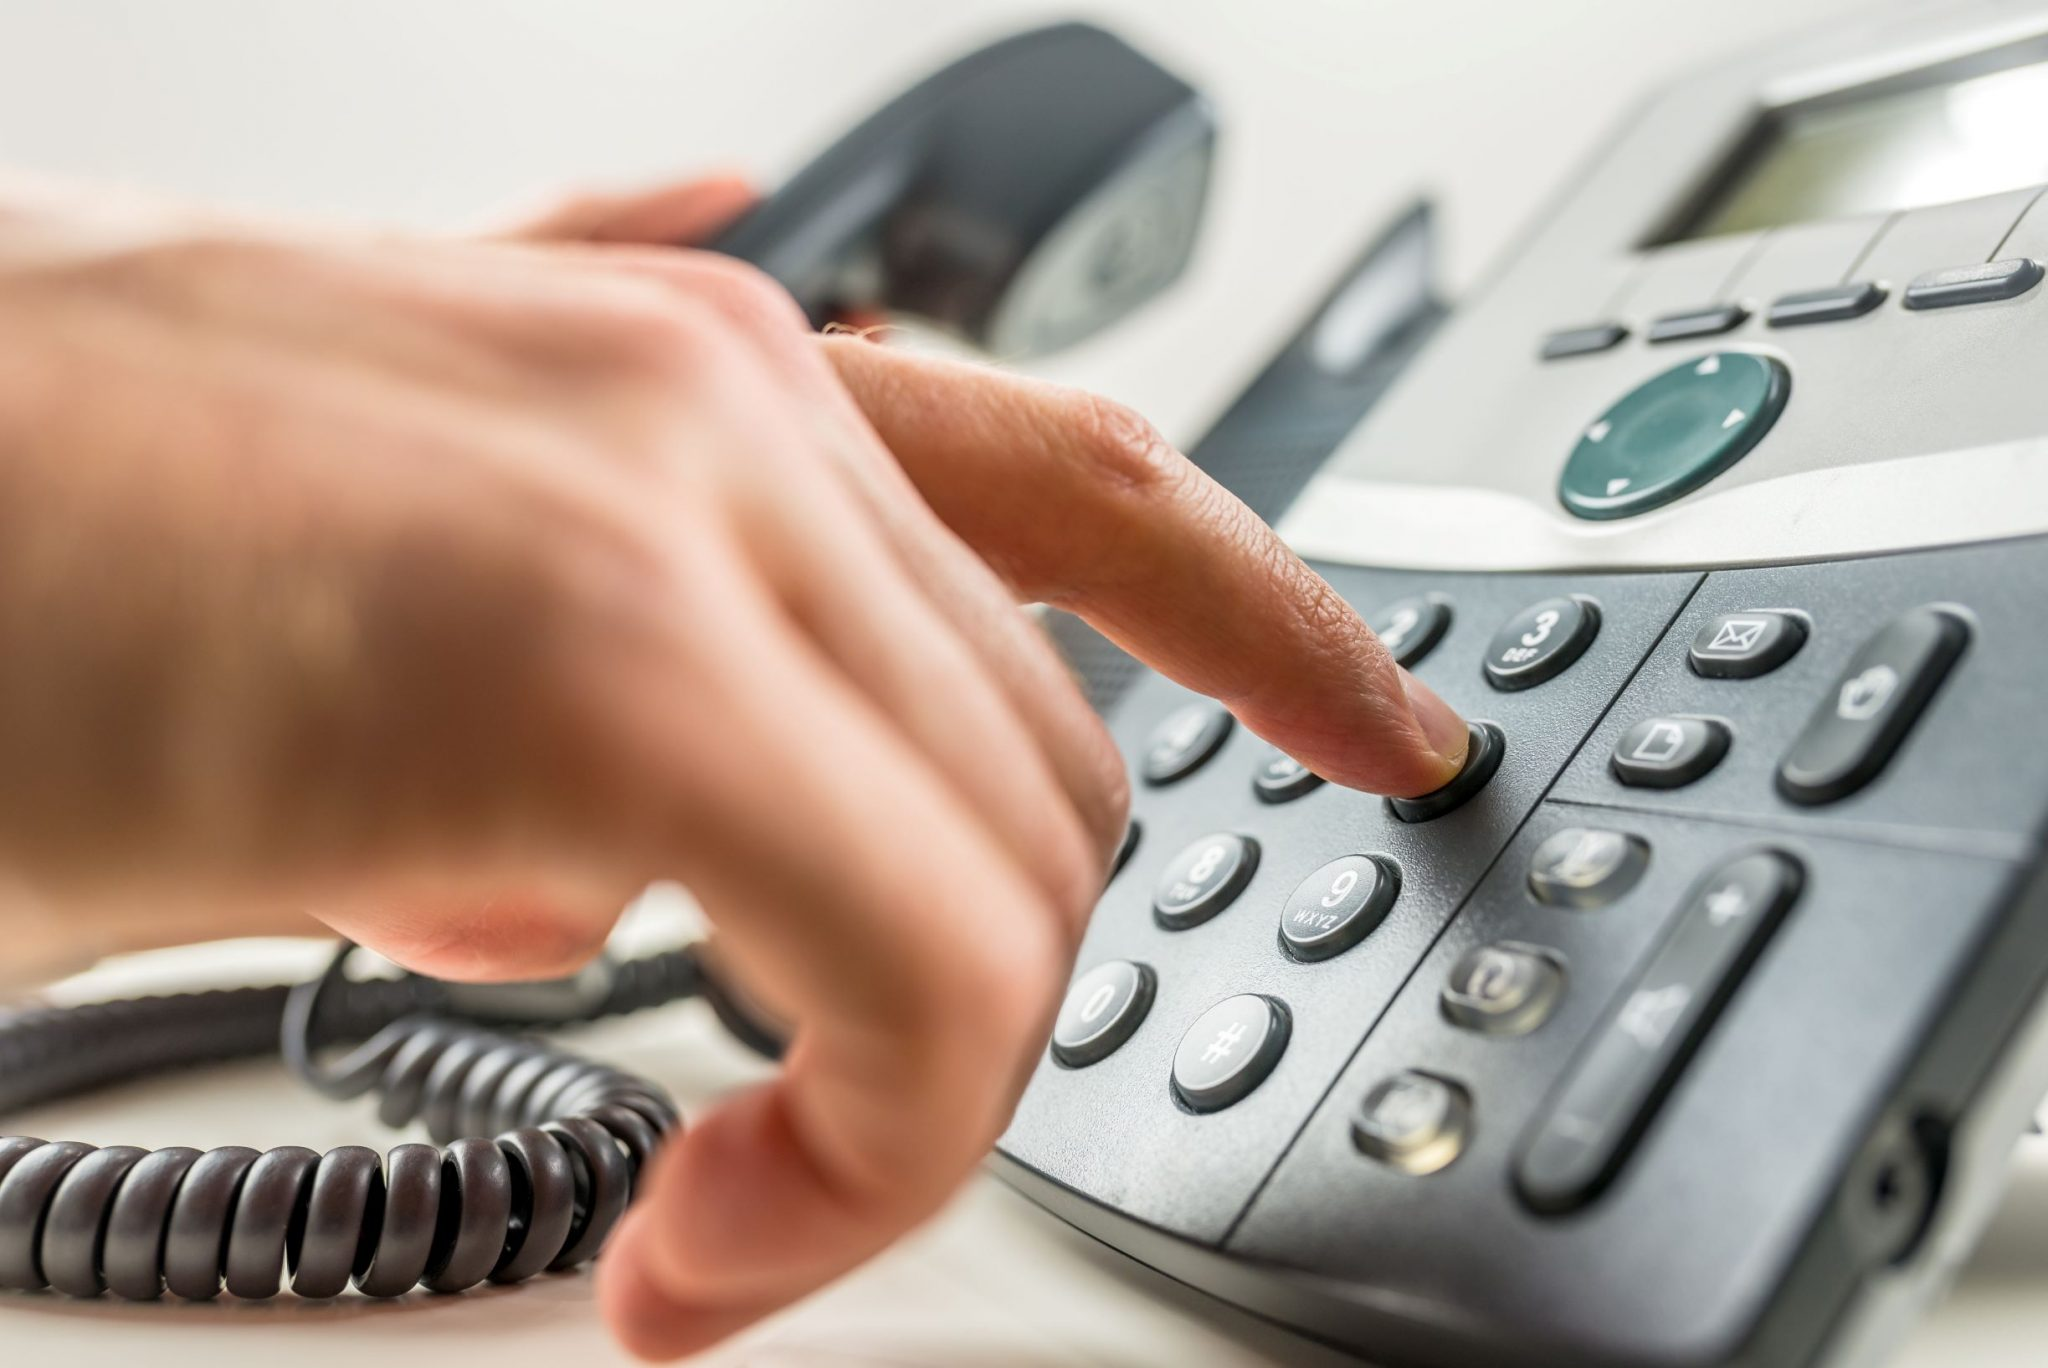 Hand dialing on a landline phone